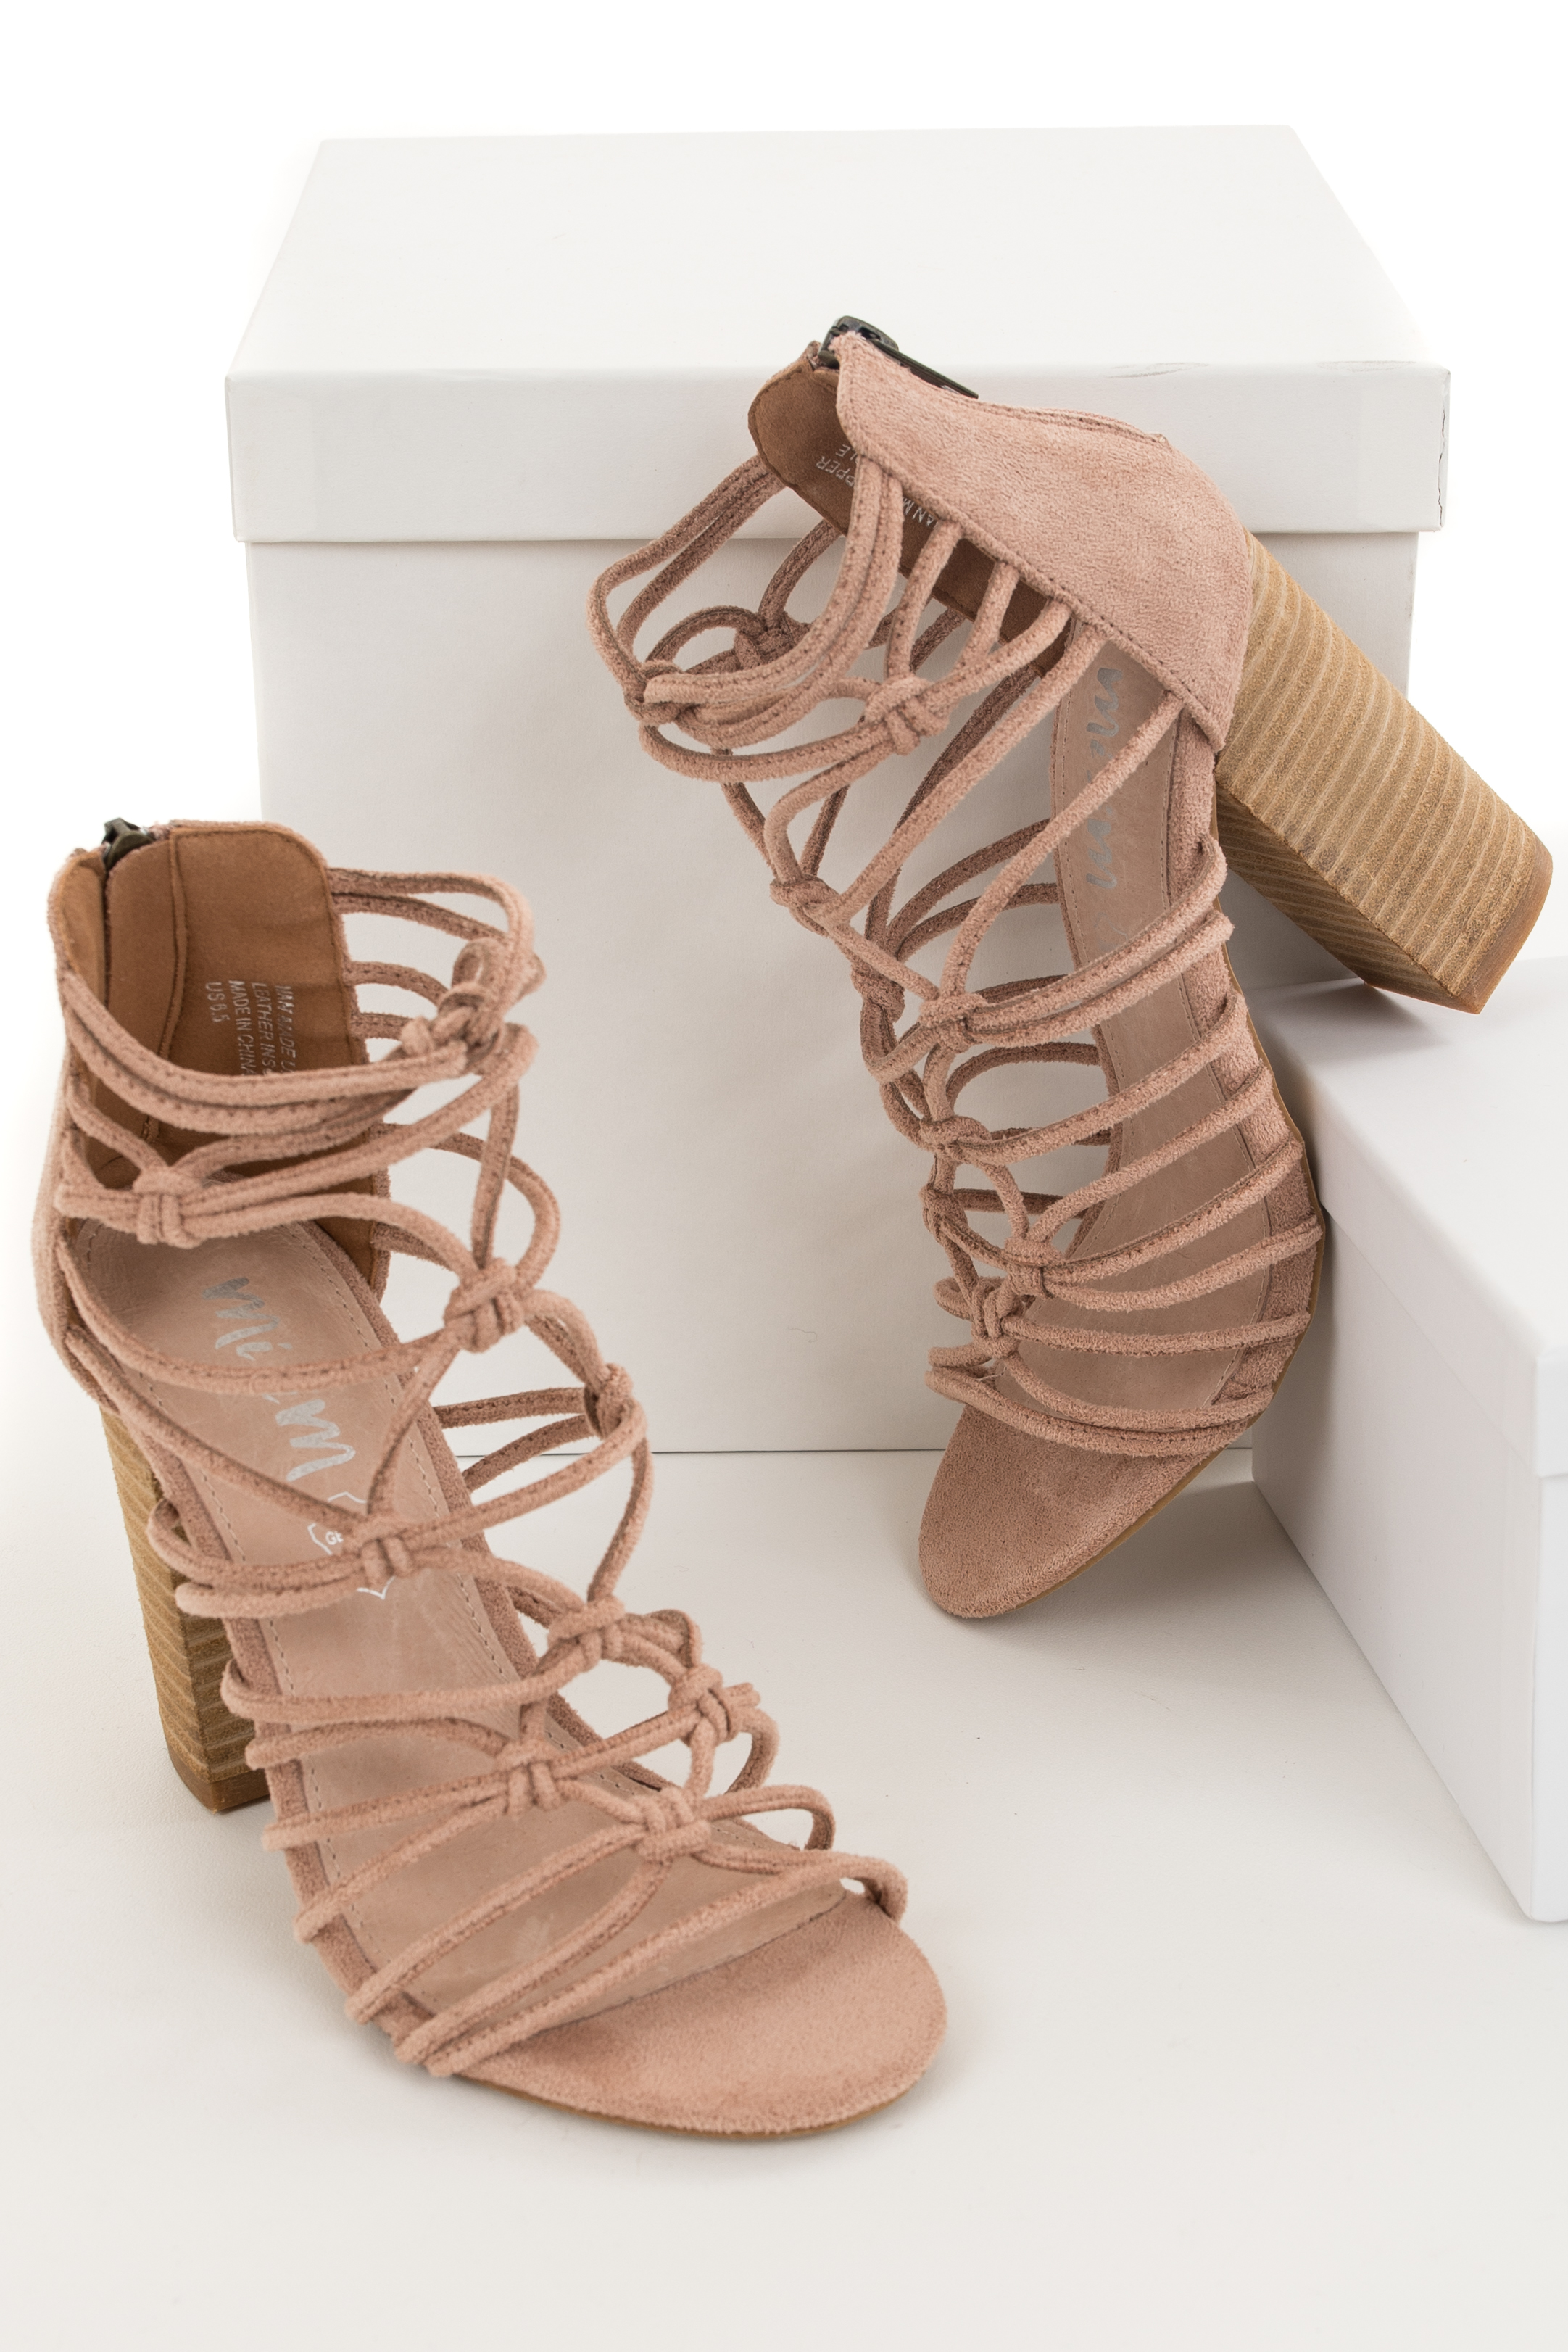 Rose Faux Suede High Heels with Knot and Strap Details